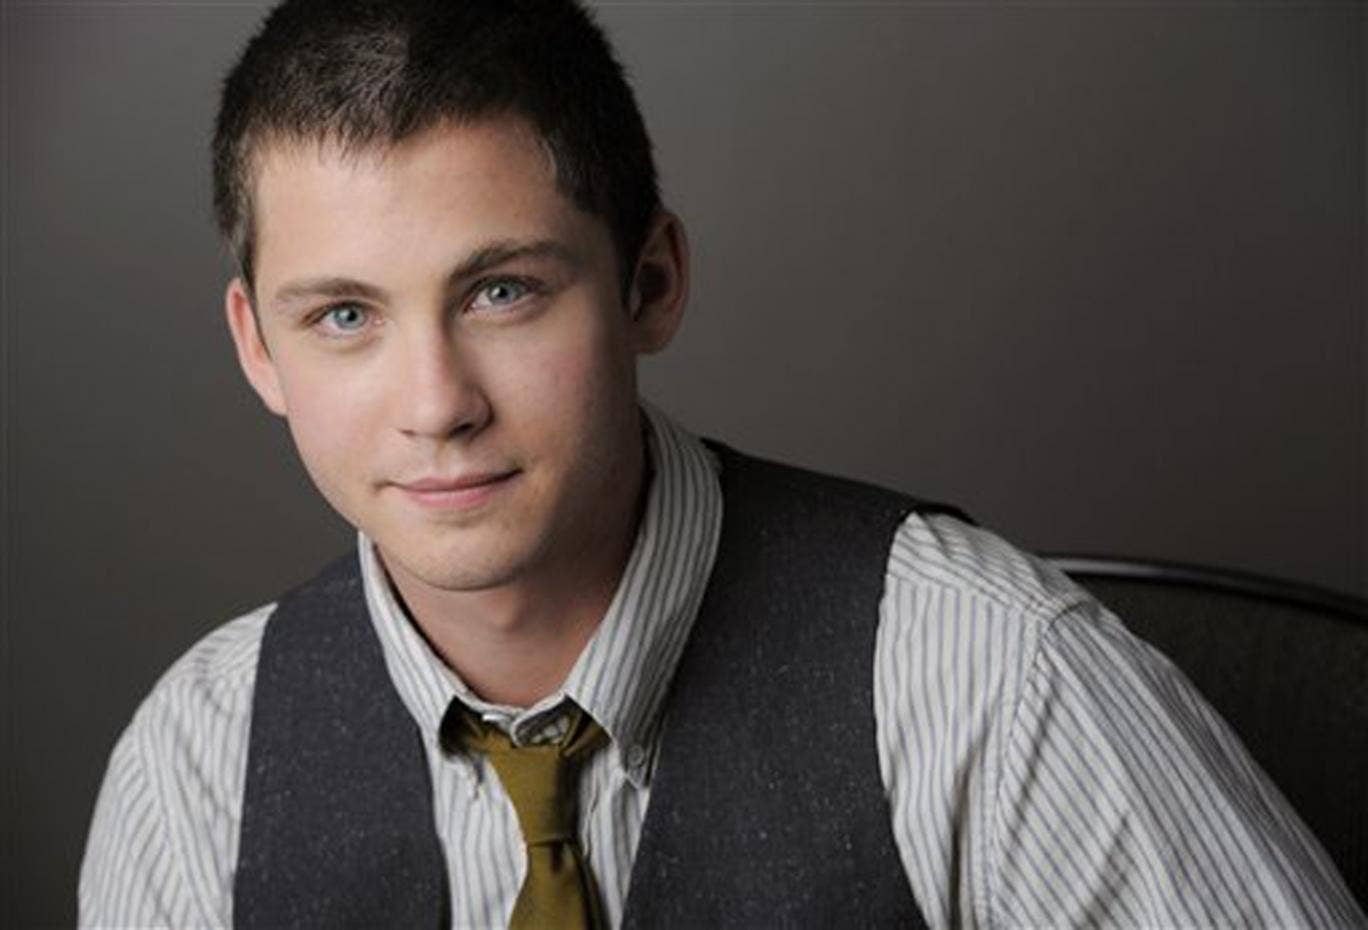 logan lerman dating history Father son relationship (11) fight (11) husband neil patrick harris and logan lerman as the most decorated dog in american history.